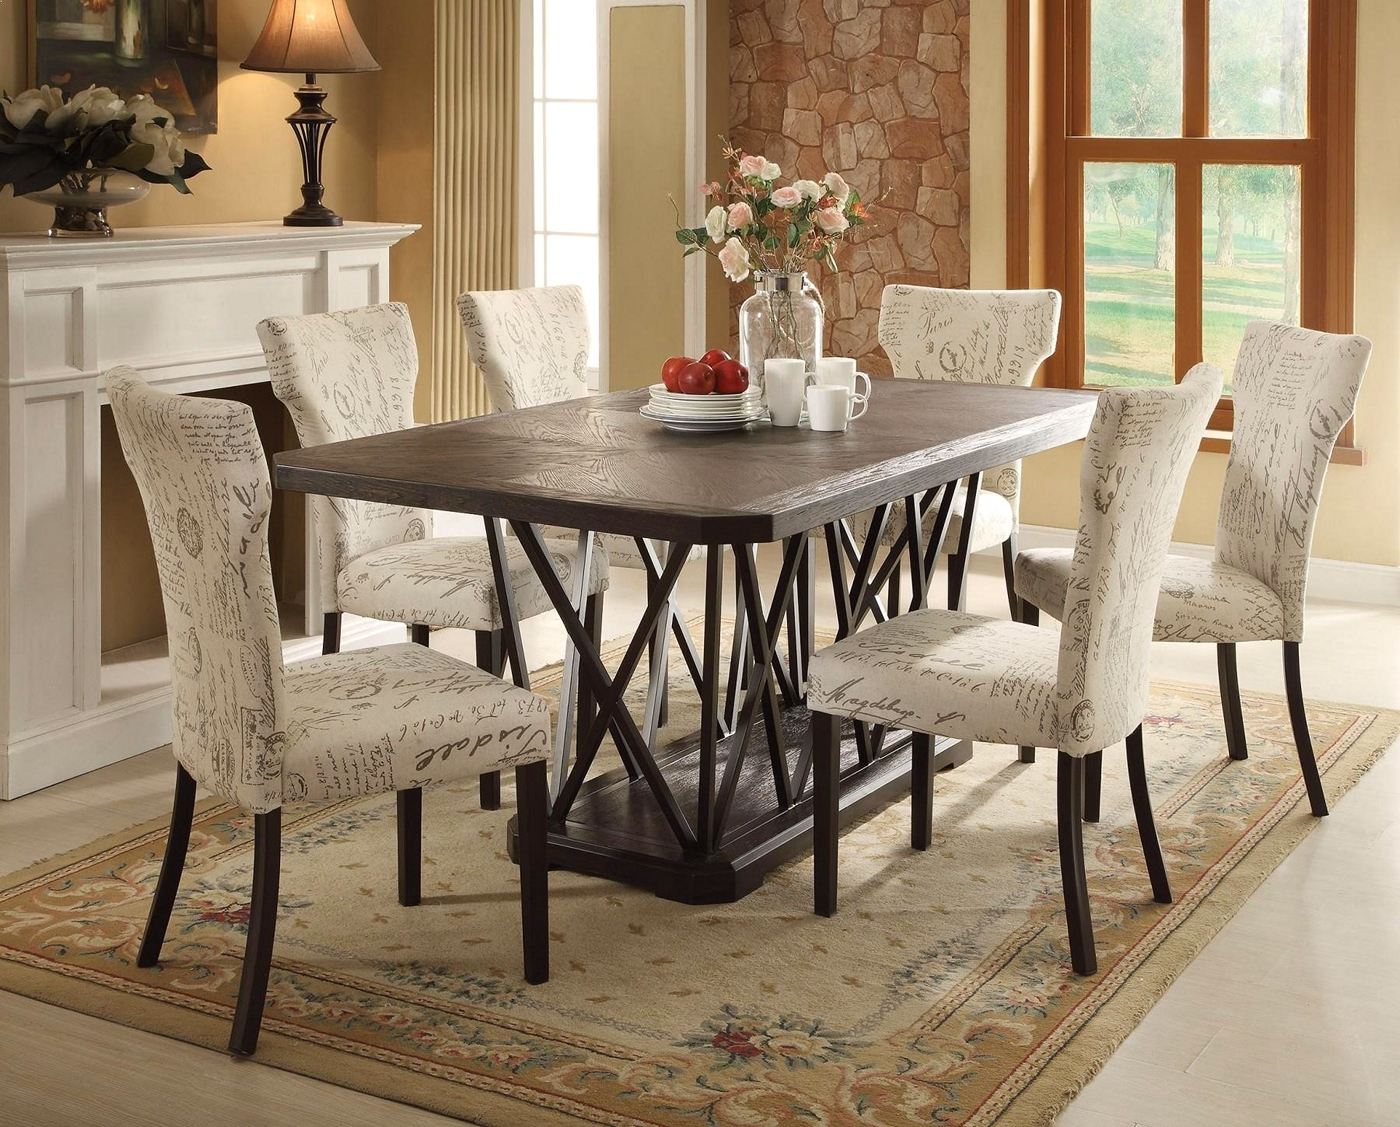 Jamon 5 Pc 76 Rustic Chic Antique Black Wooden Top Dining